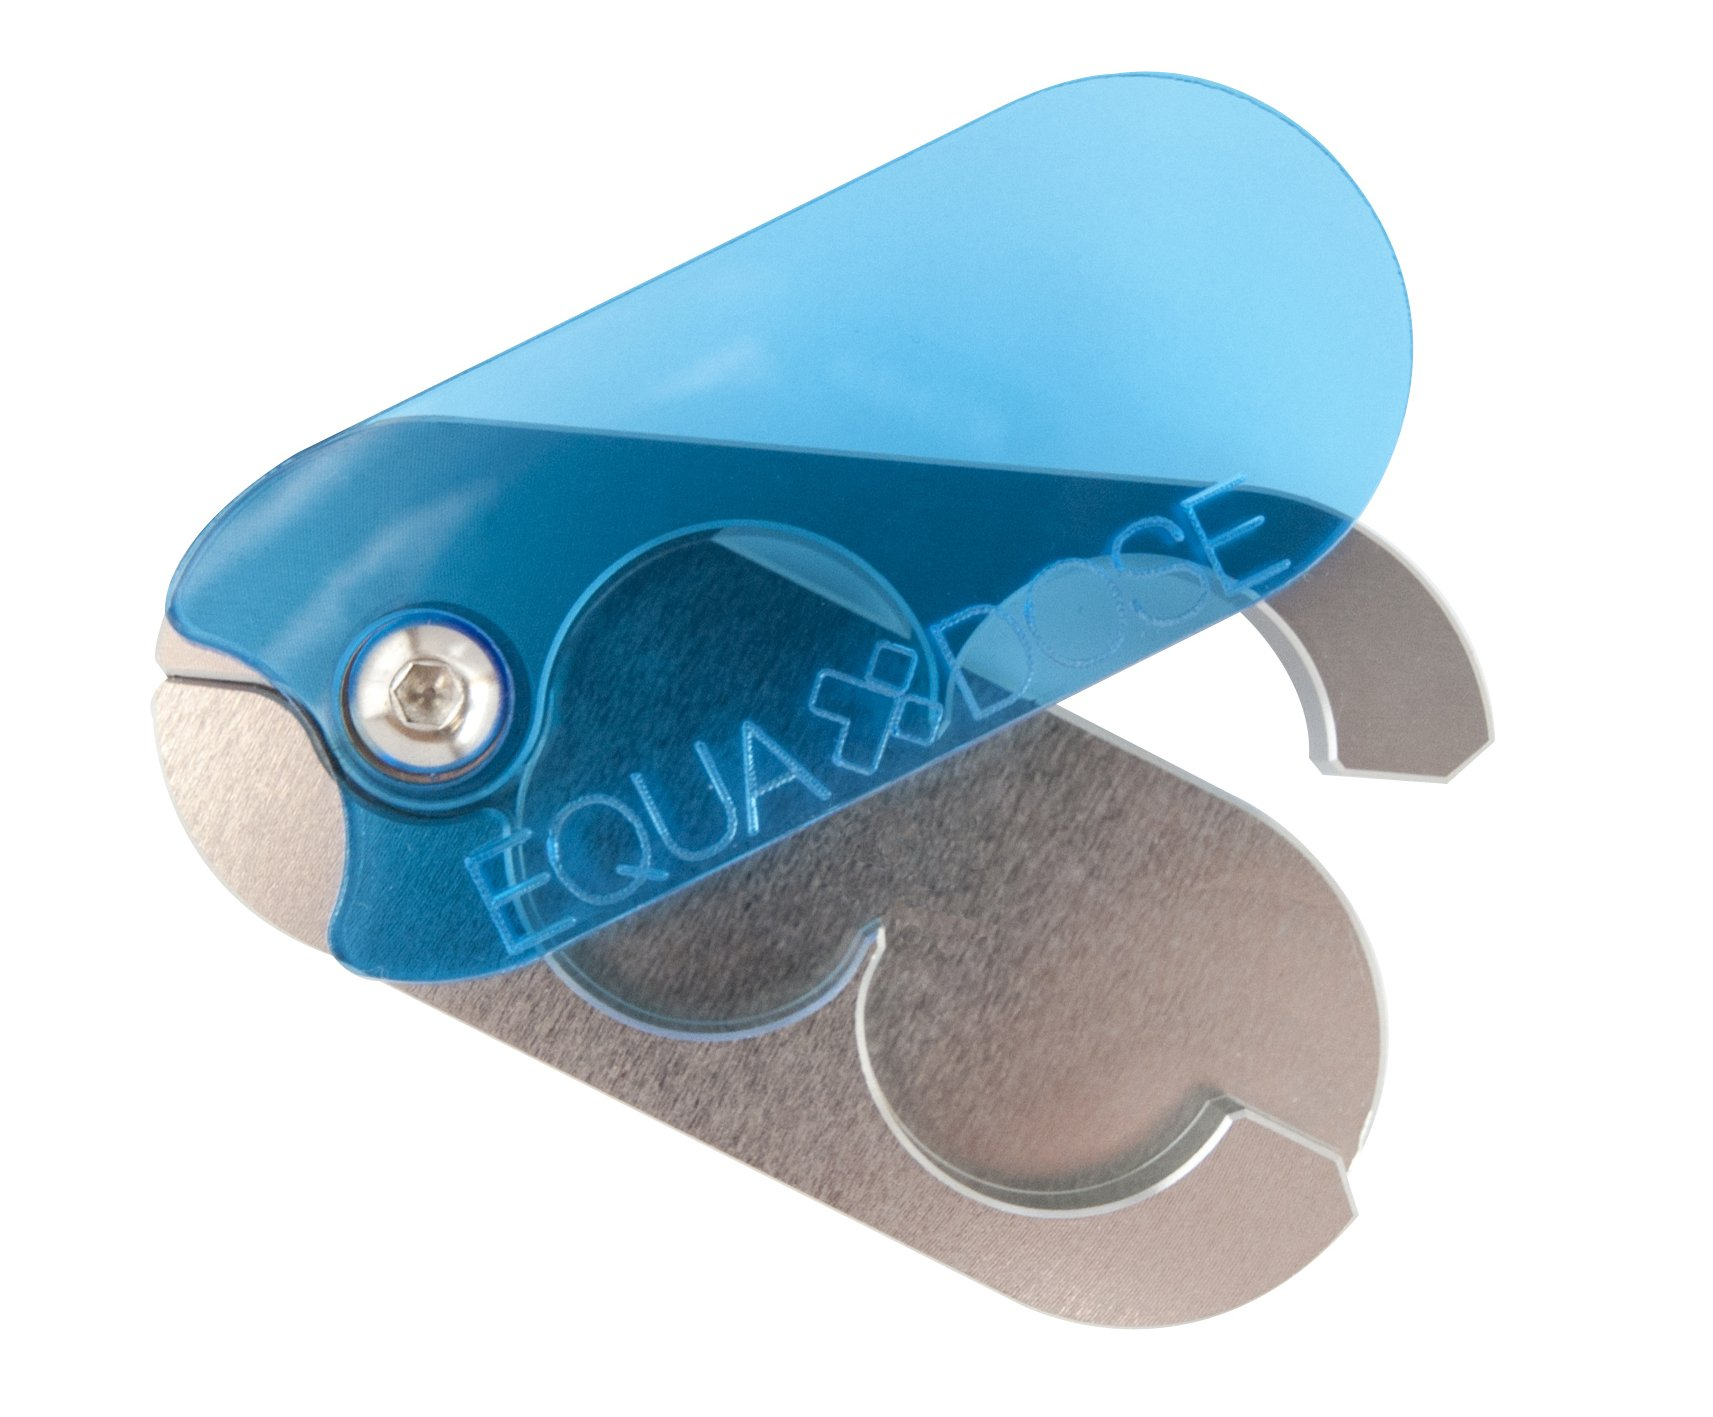 The Equadose Pill Splitter. The Best Pill Cutter Ever! Crafted in The USA. Doubles as a Pill Box. Great for Pets Too! by EQUADOSE